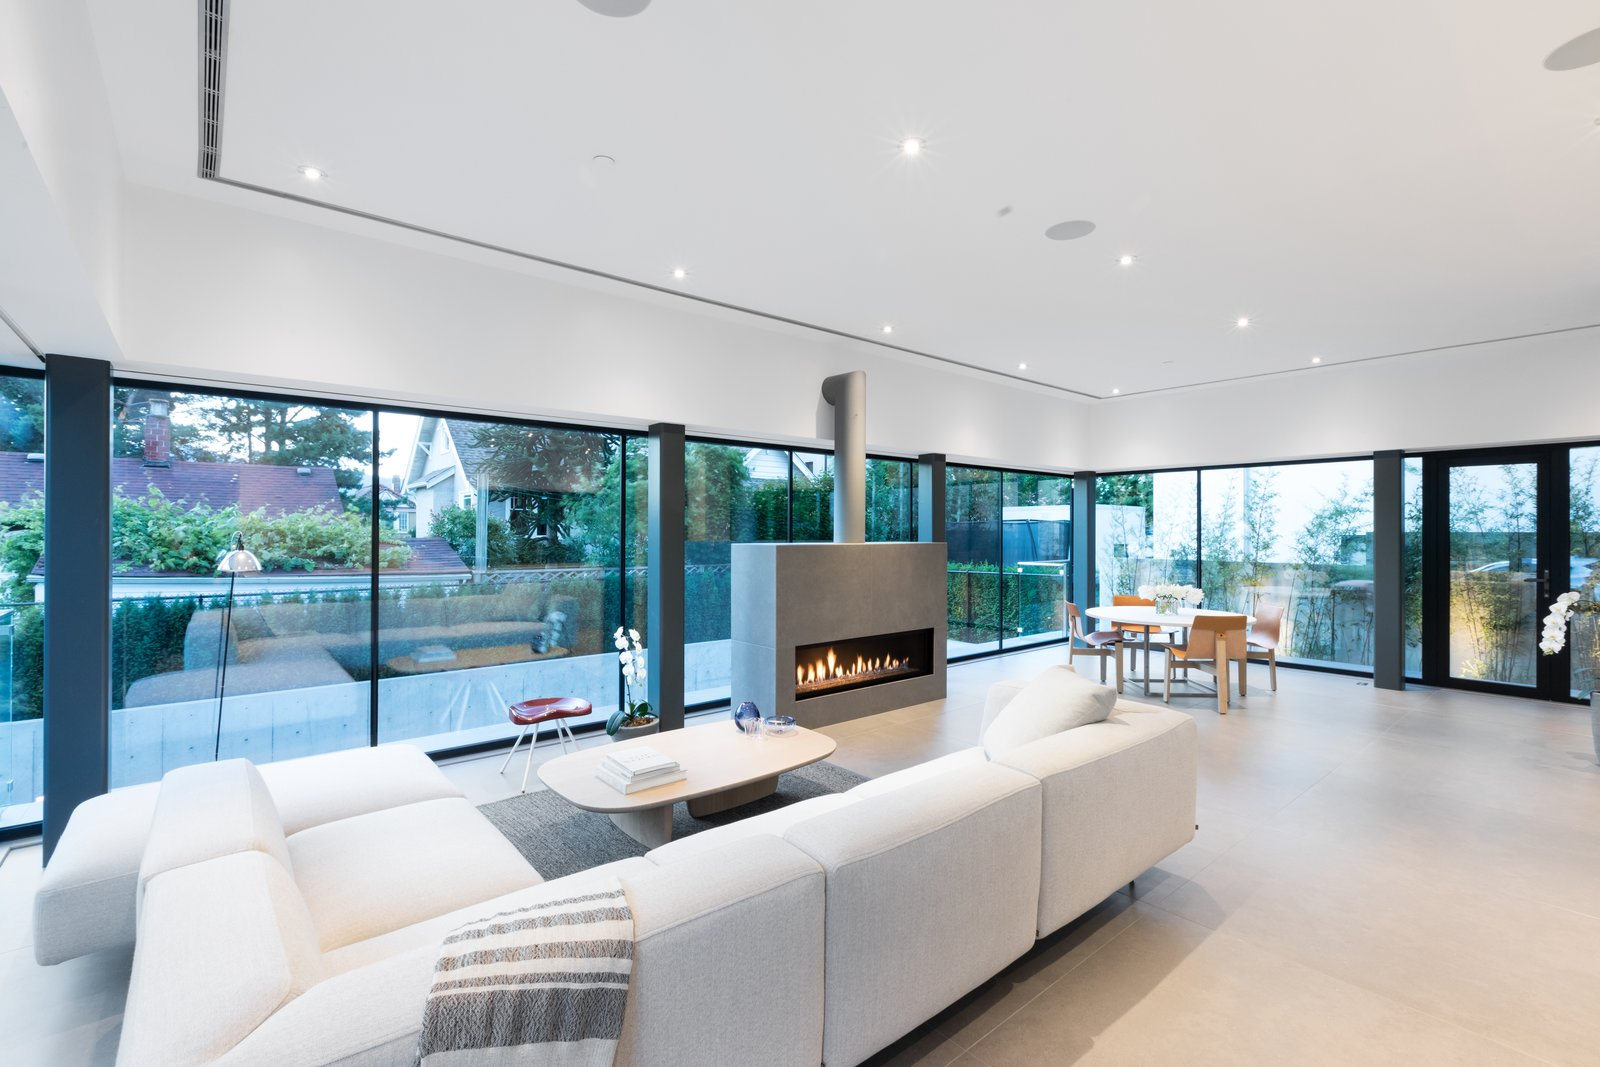 Living Room, Ribbon Fireplace, Gas Burning Fireplace, Rug Floor, Sectional, Coffee Tables, Chair, Recessed Lighting, Floor Lighting, Table, and Stools  Photo 4 of 12 in Wrapped in Galvanized Steel, 'Cube House' in Vancouver Asks $12.8M